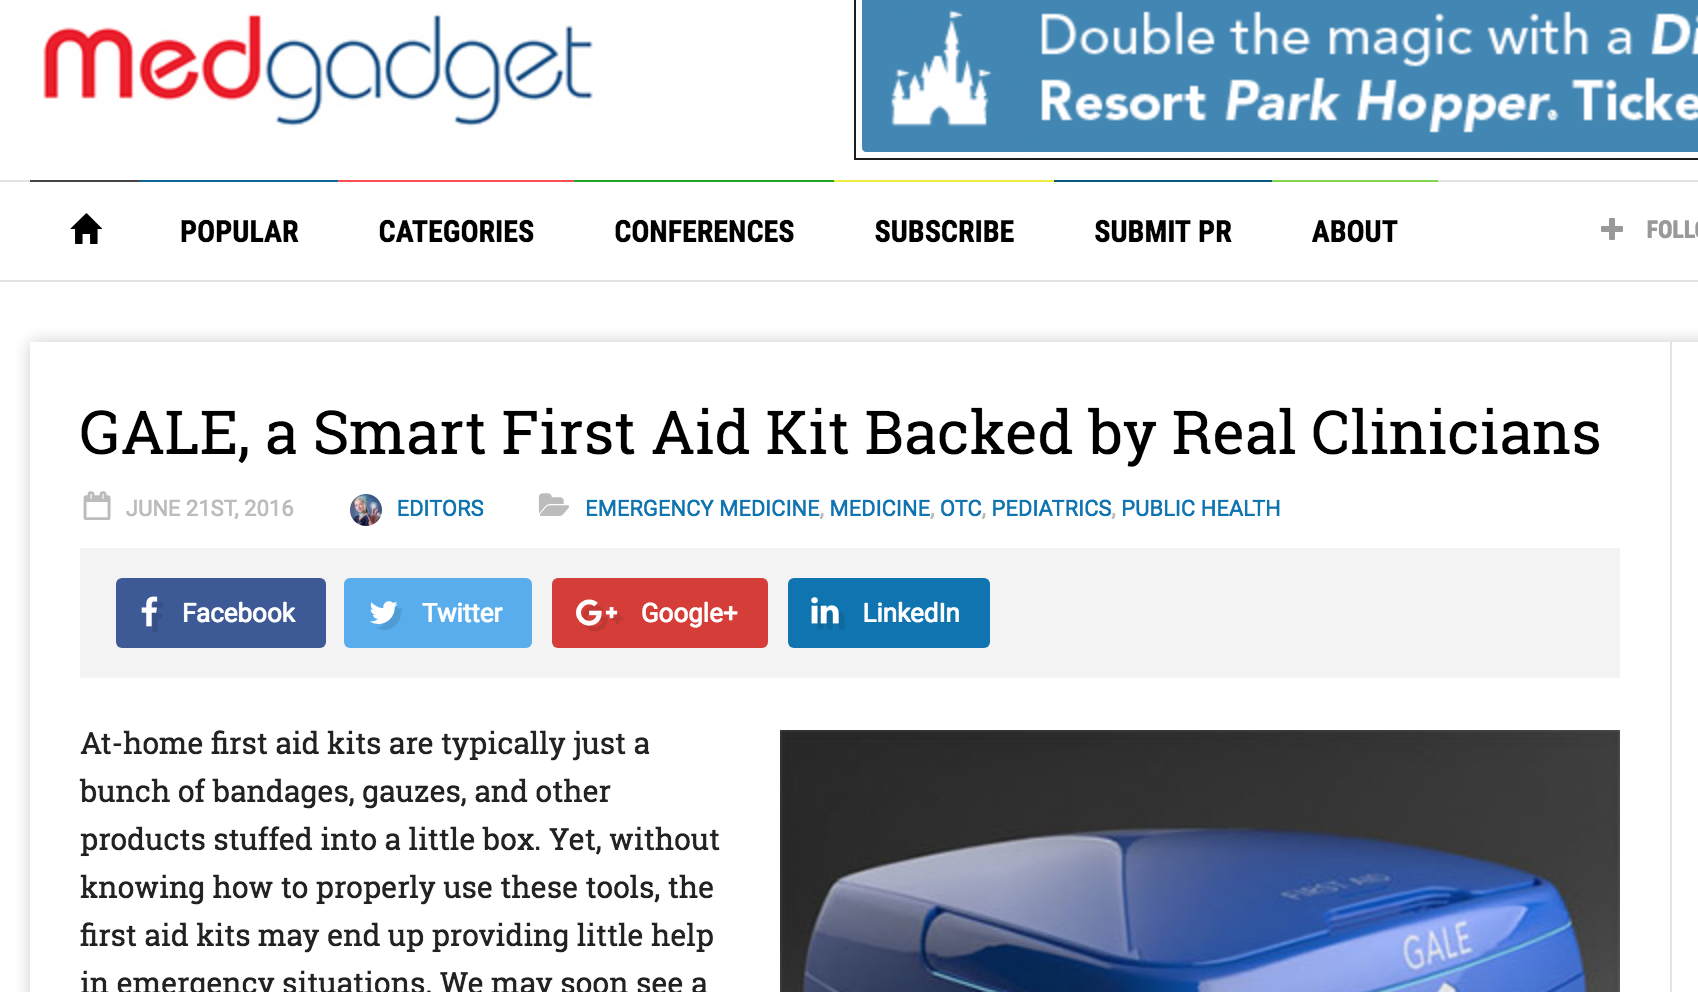 GALE, a Smart First Aid Kit Backed by Real Clinicians